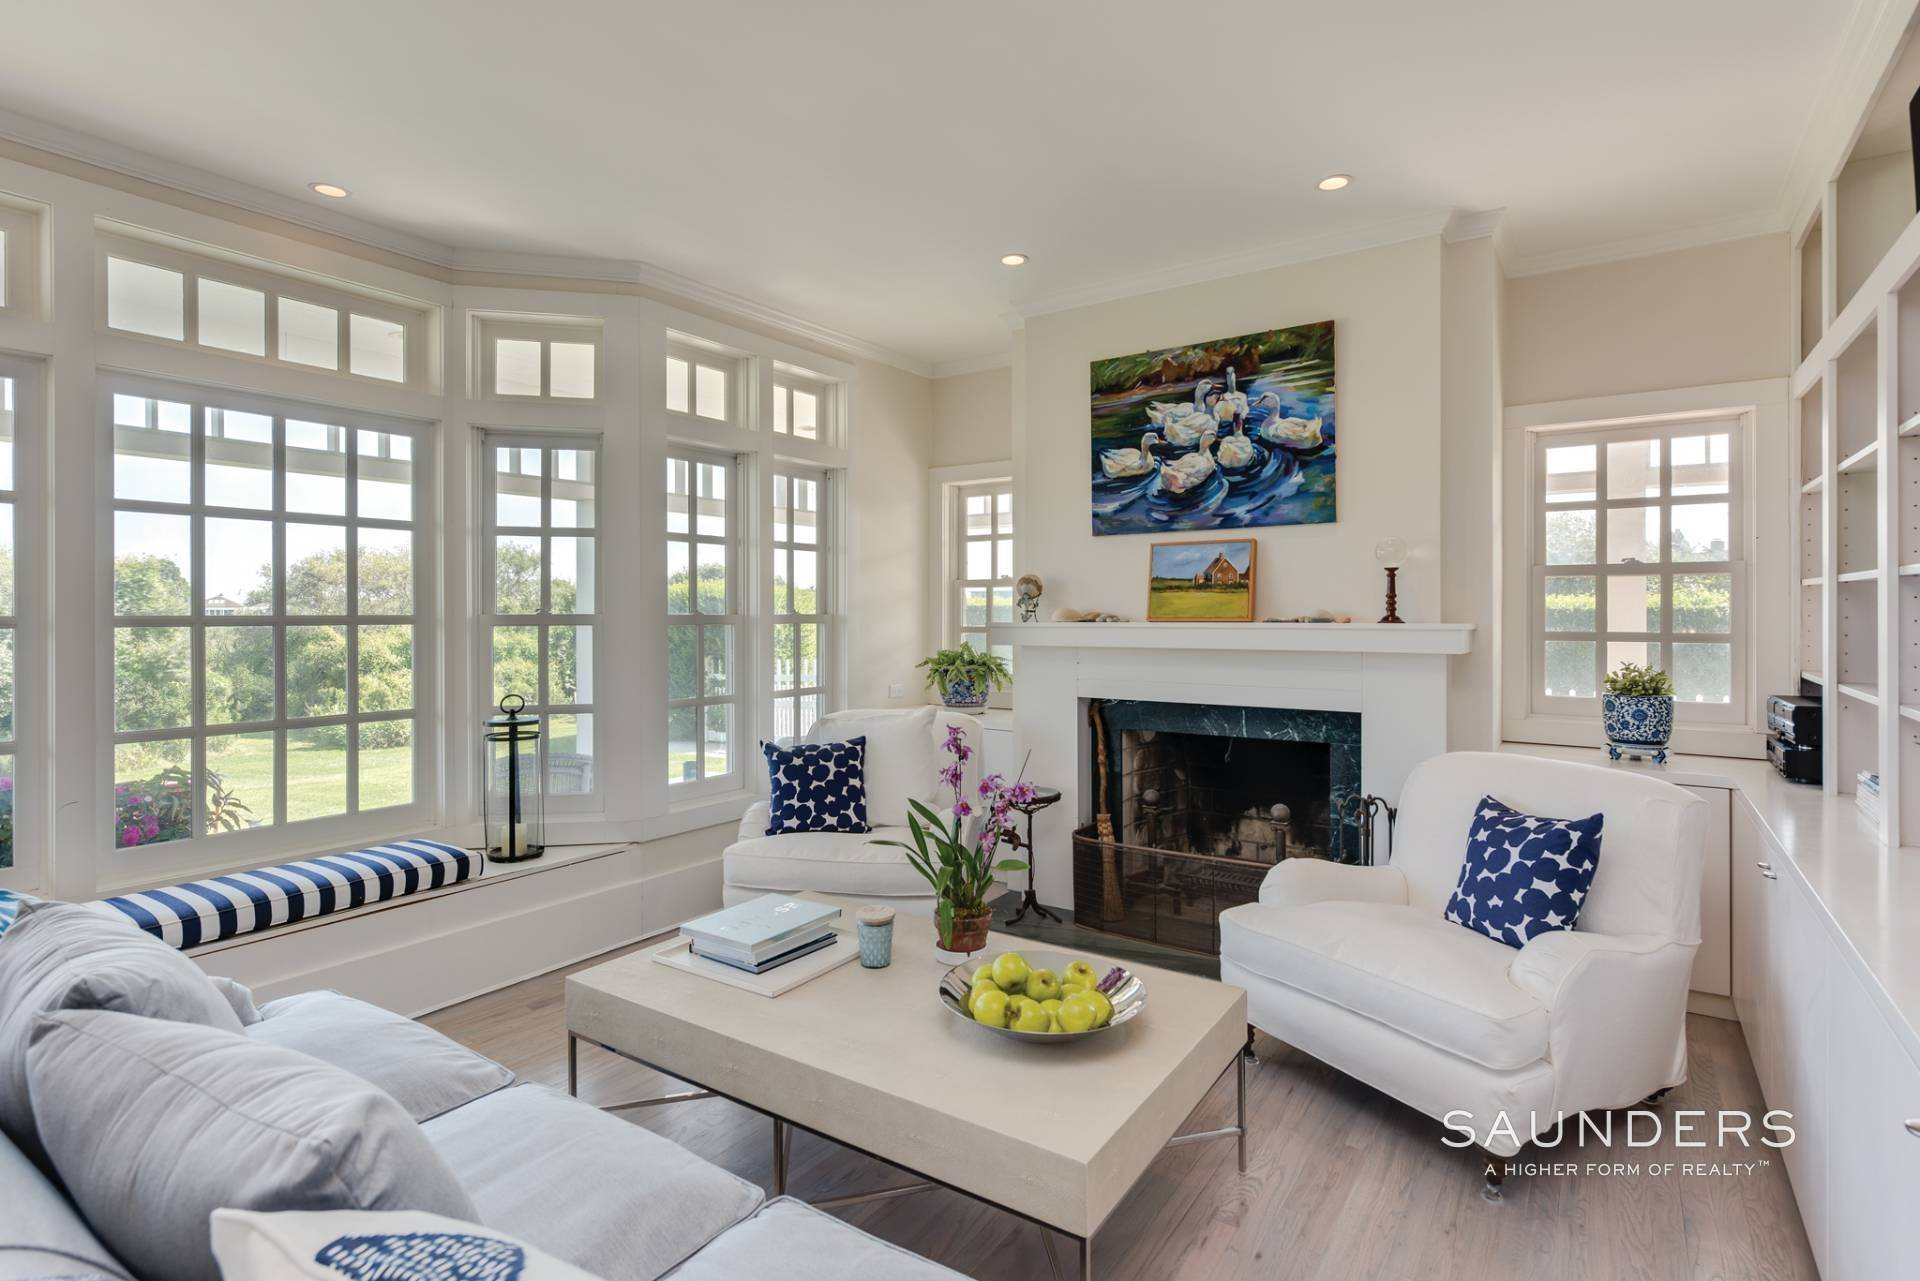 4. Single Family Homes for Sale at Bridgehampton South Waterfront With Dock & Ocean View 87 Rose Way, Bridgehampton, Southampton Town, NY 11932